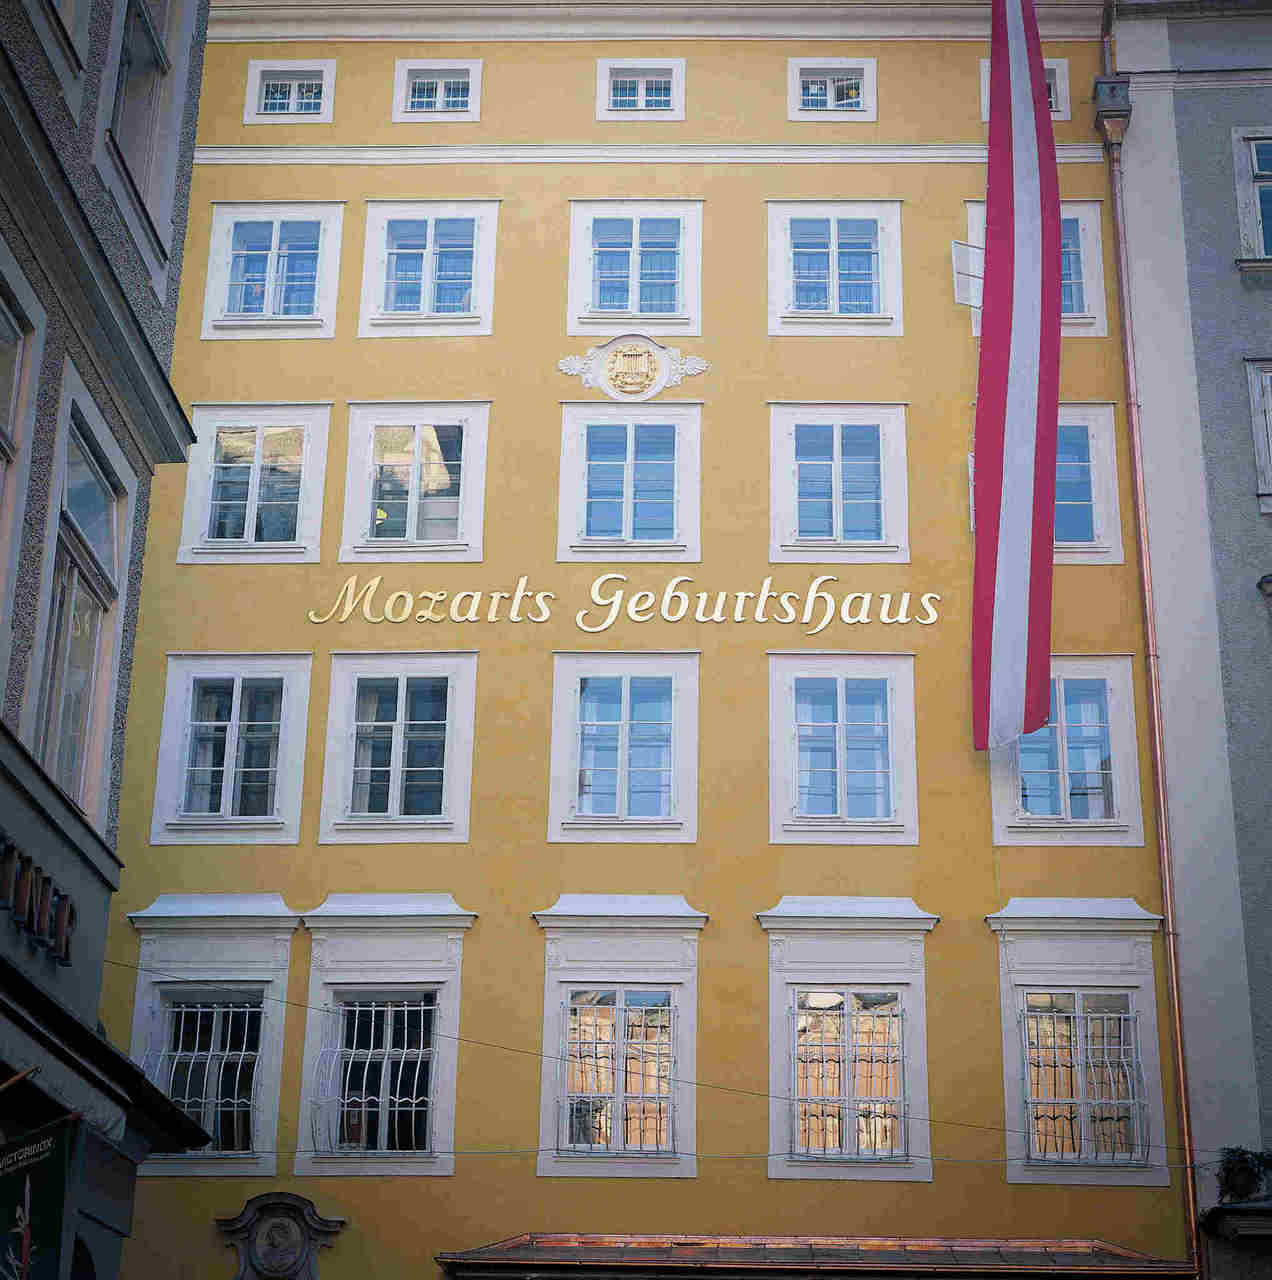 The birthplace of Mozart